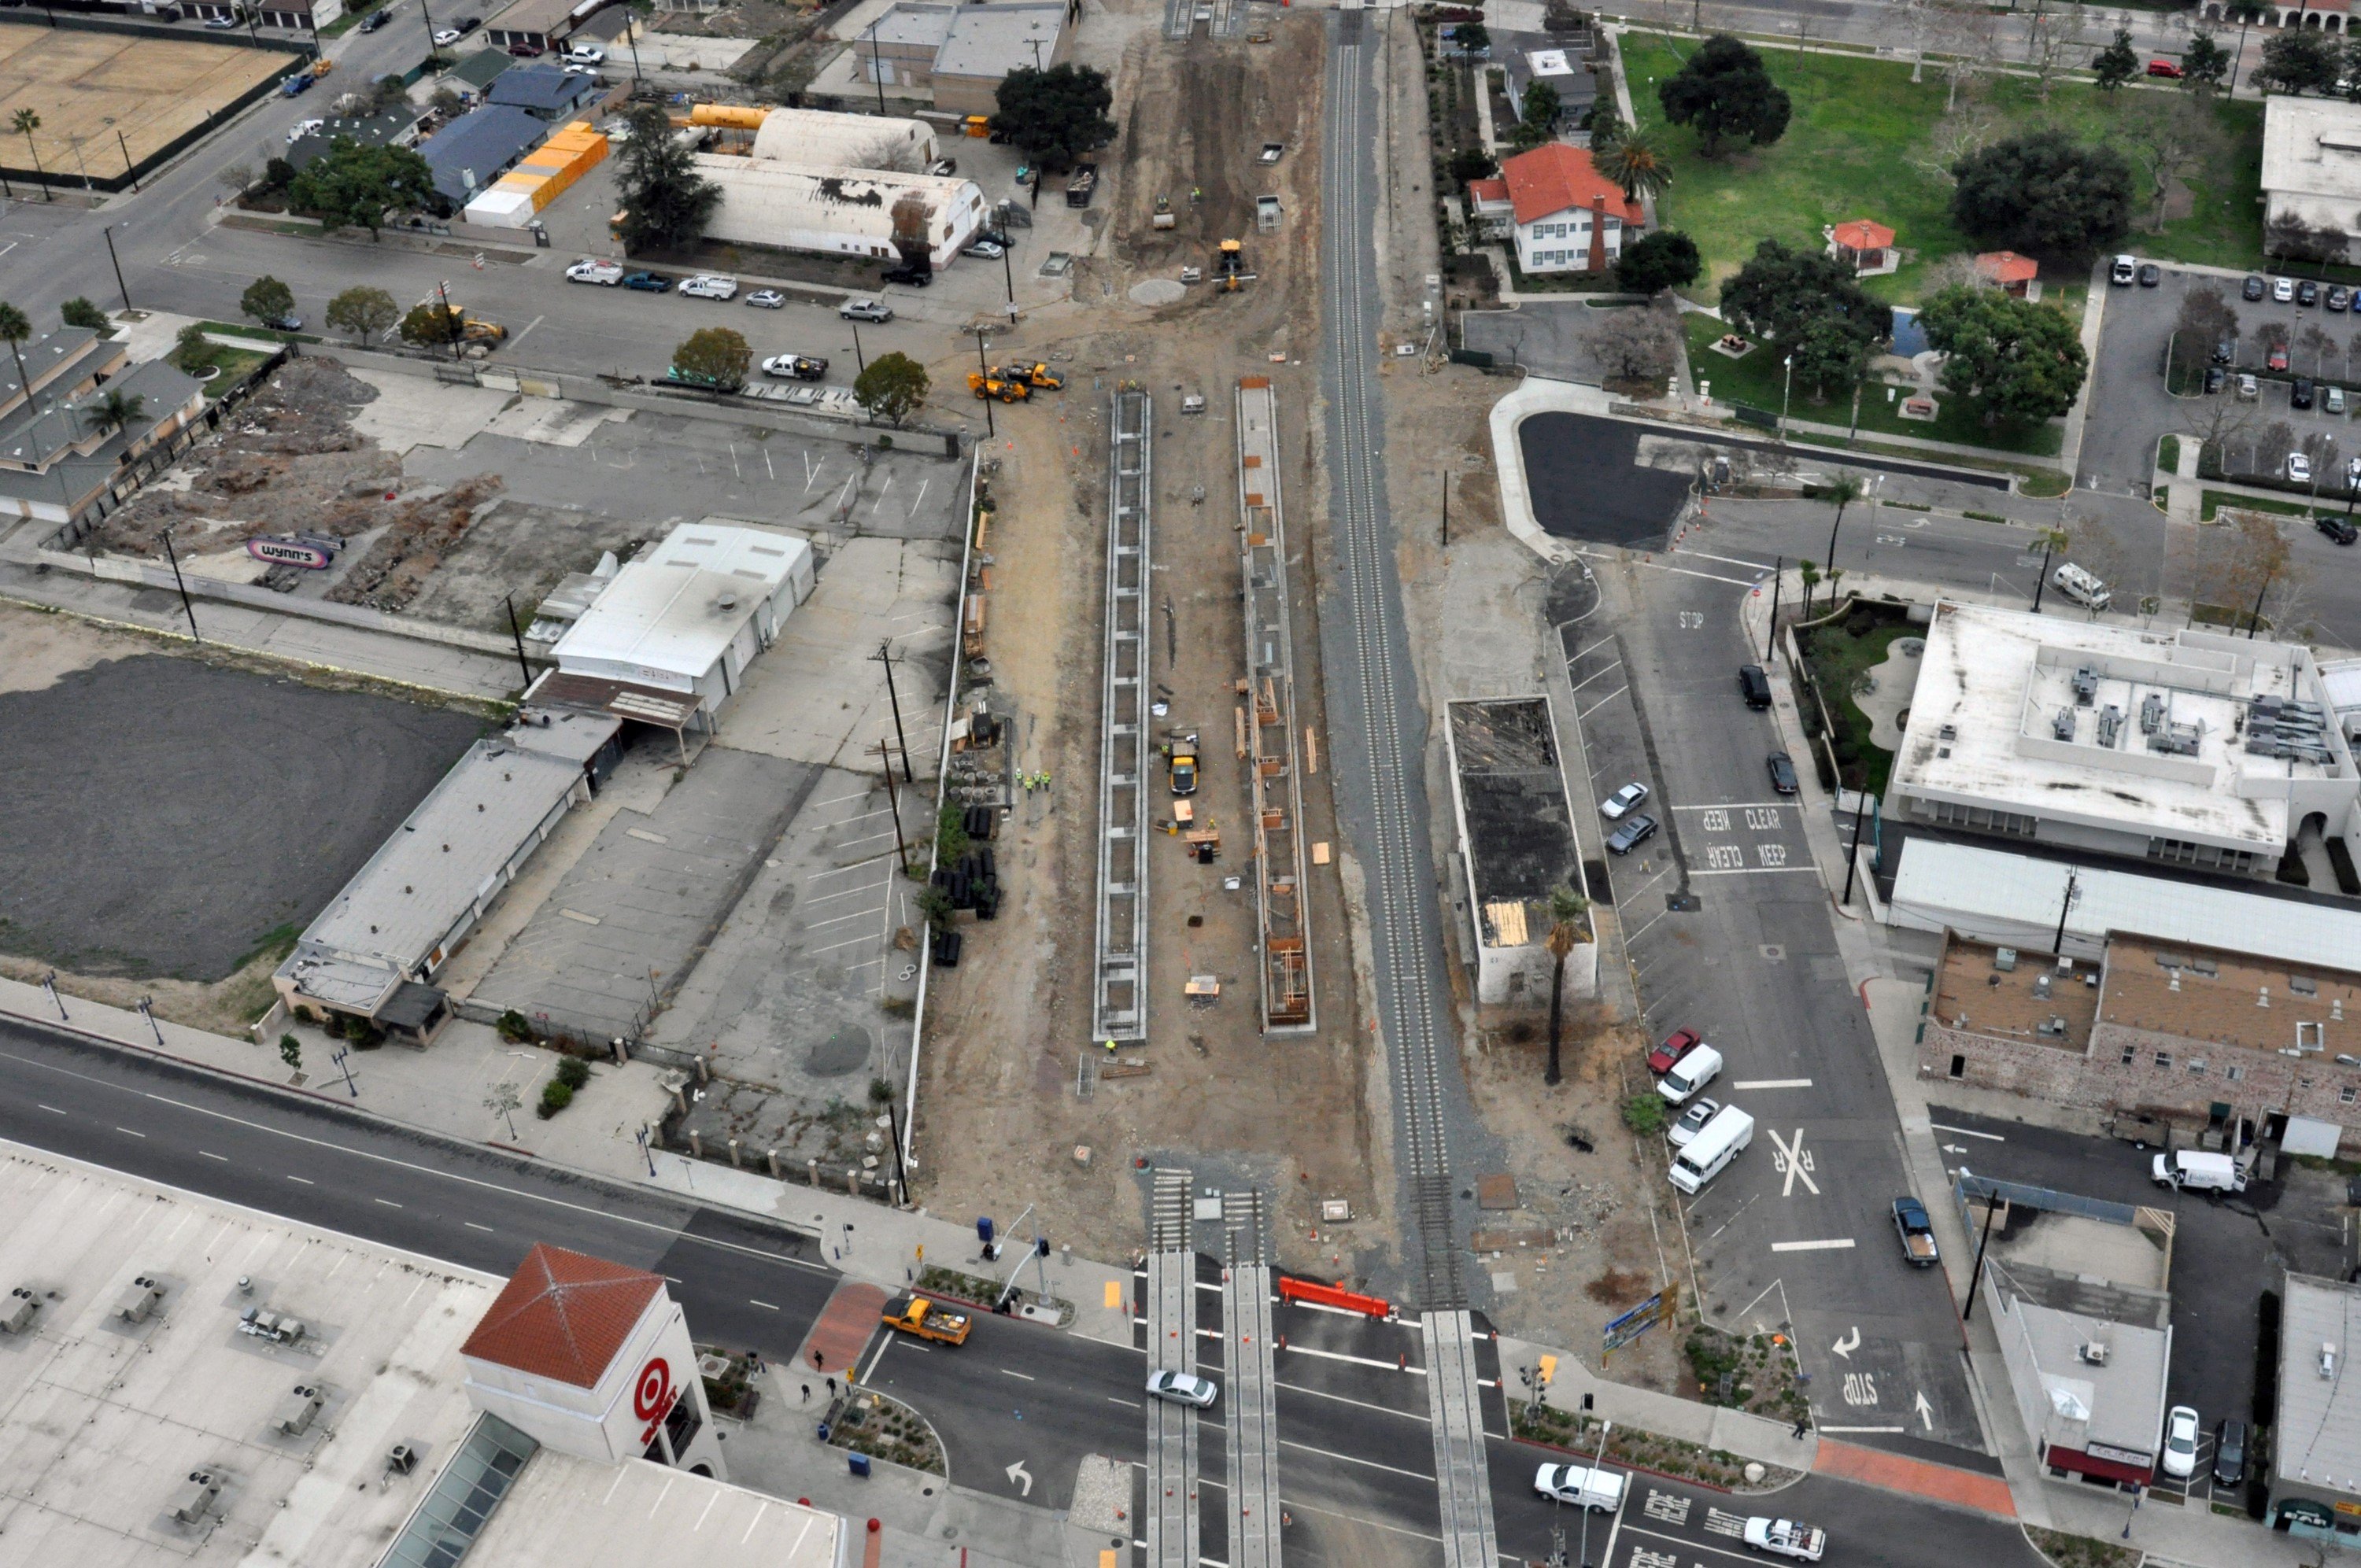 The Gold Line platforms in downtown Azusa next to the old Santa Fe depot along with the newly realigned freight track.